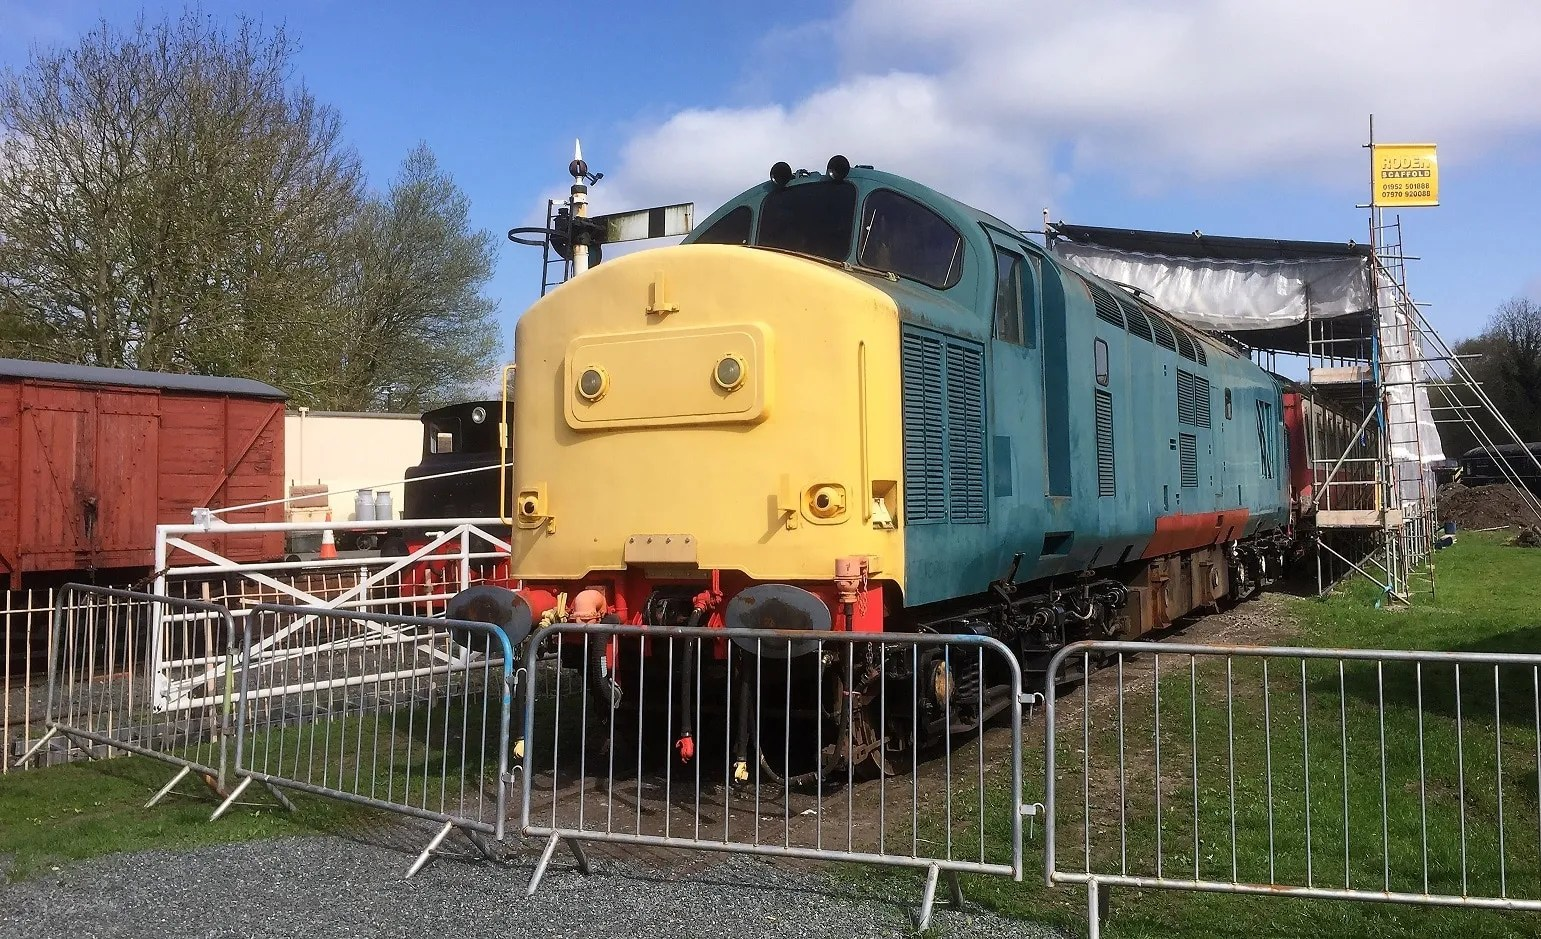 Class 37 number 37263 ex D6963 at Horsehay on the Telford Steam Railway